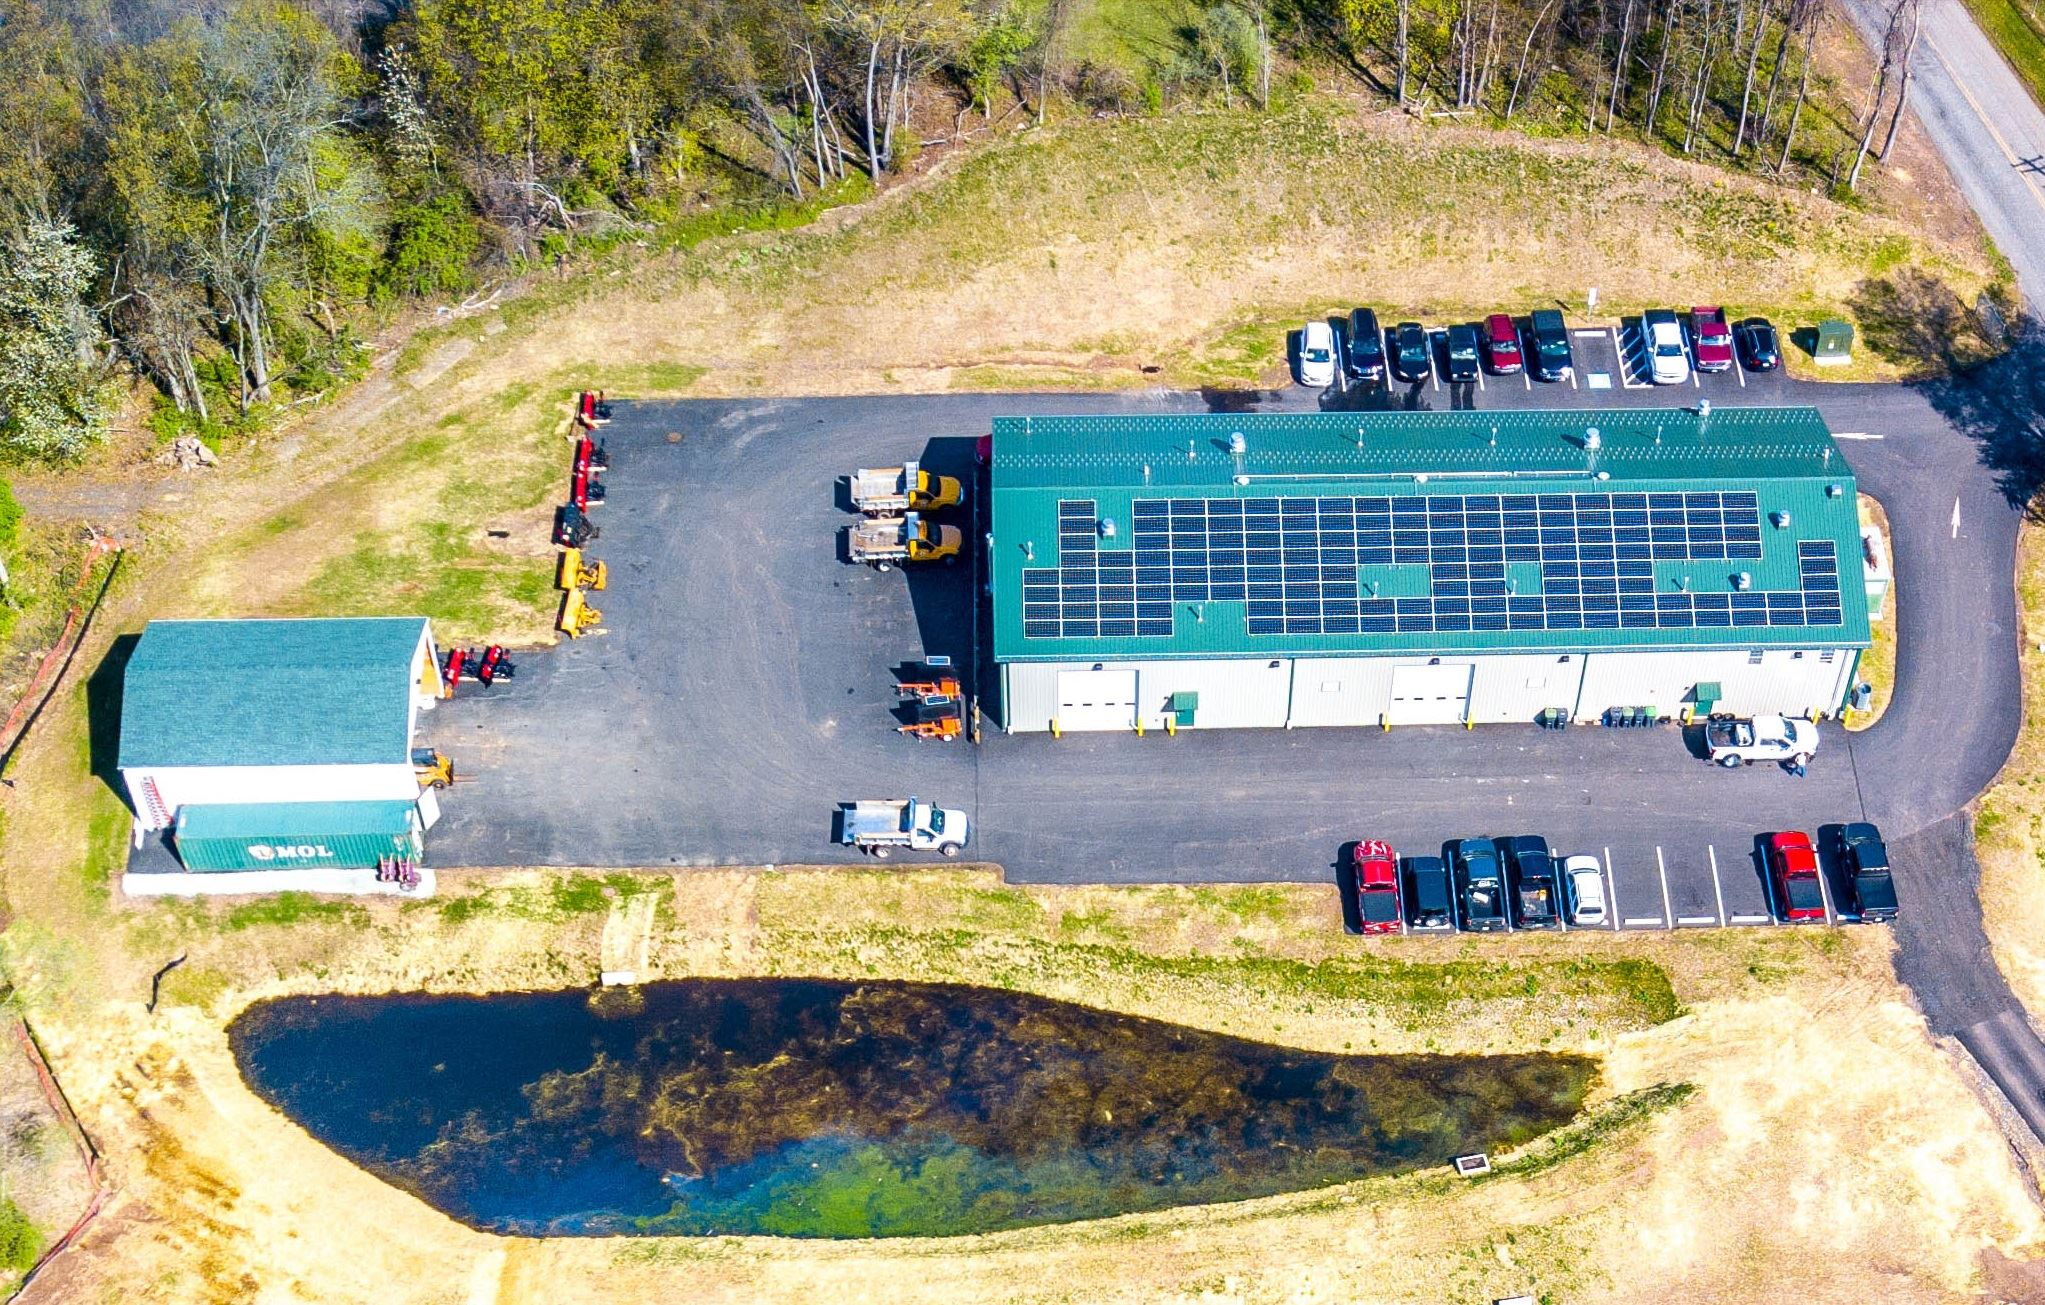 Aerial view of solar panels on Public Works building